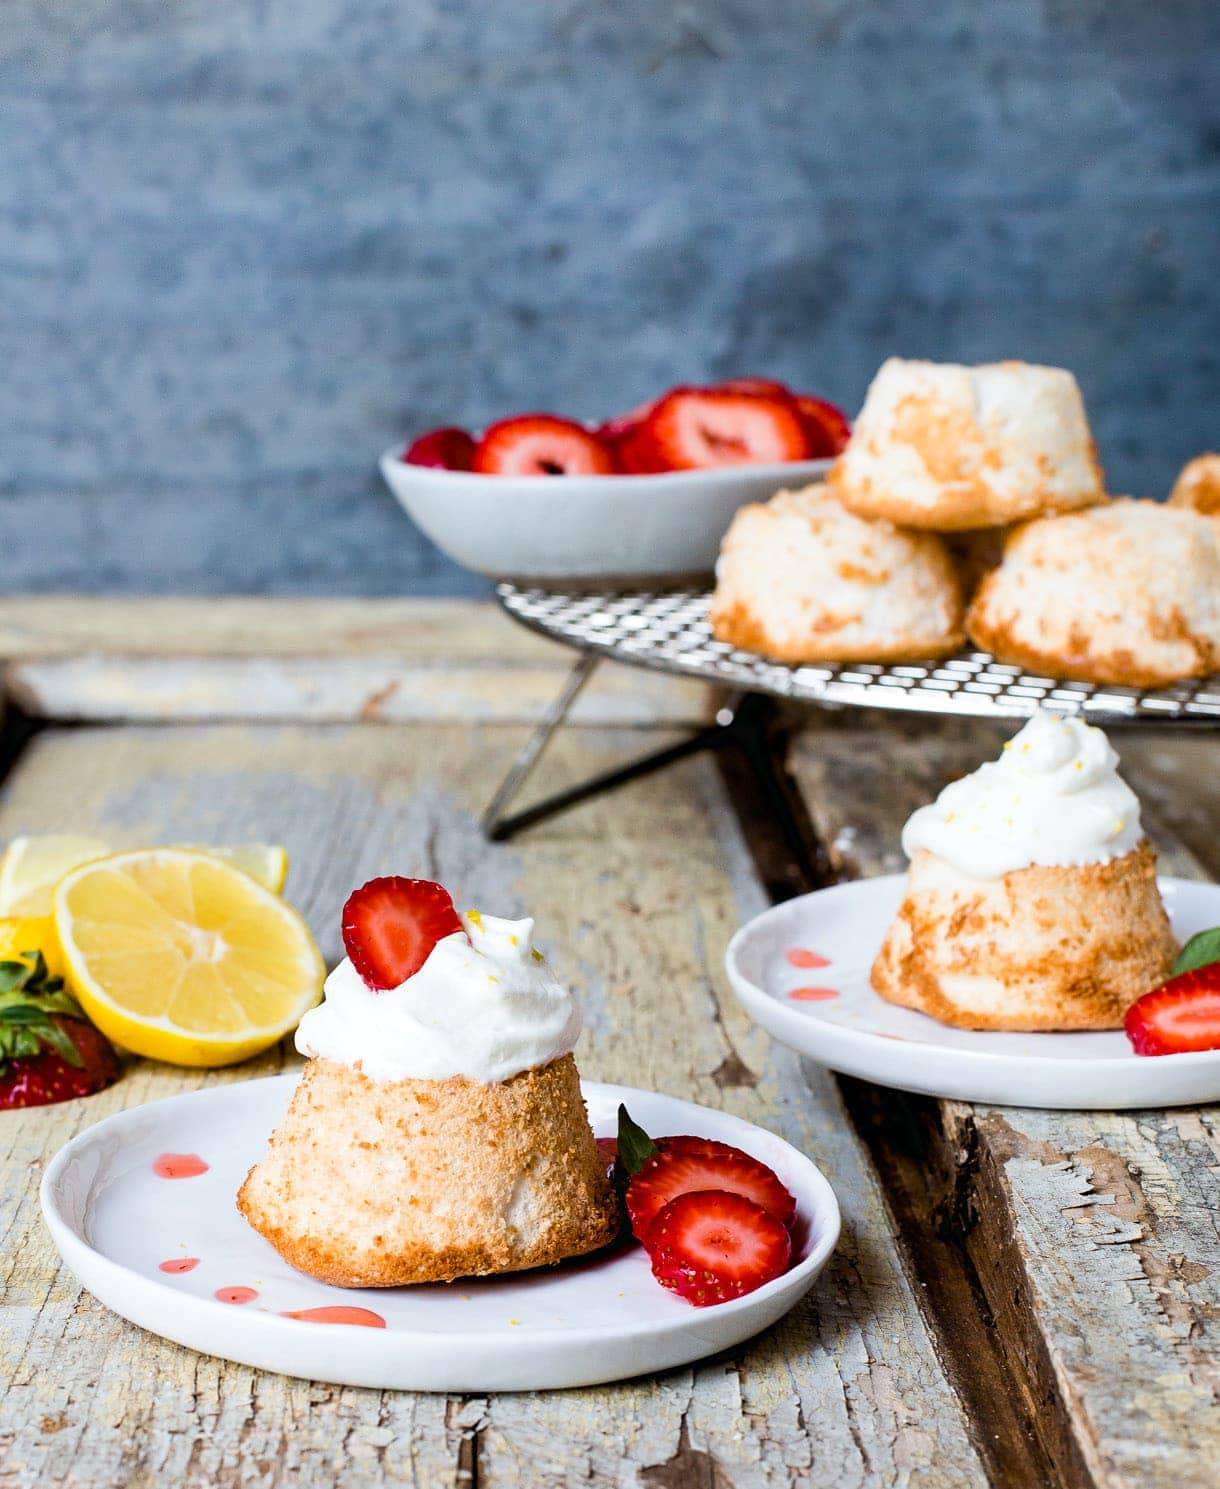 Grain-Free, Gluten-Free Angel Food Cake with Lemon Whipped Cream & Strawberries